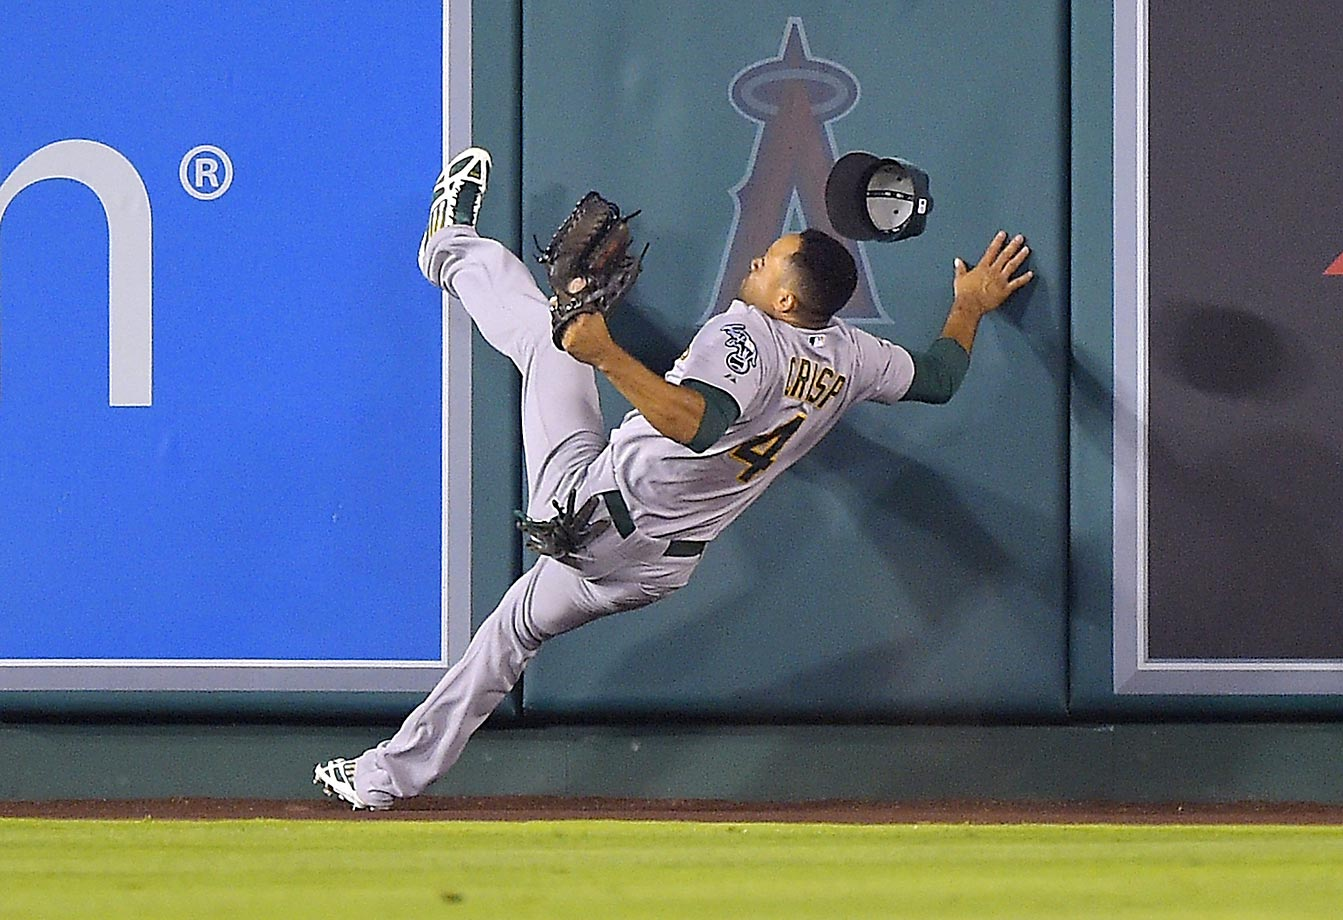 Coco Crisp loses his balance after going to the wall to make a catch.